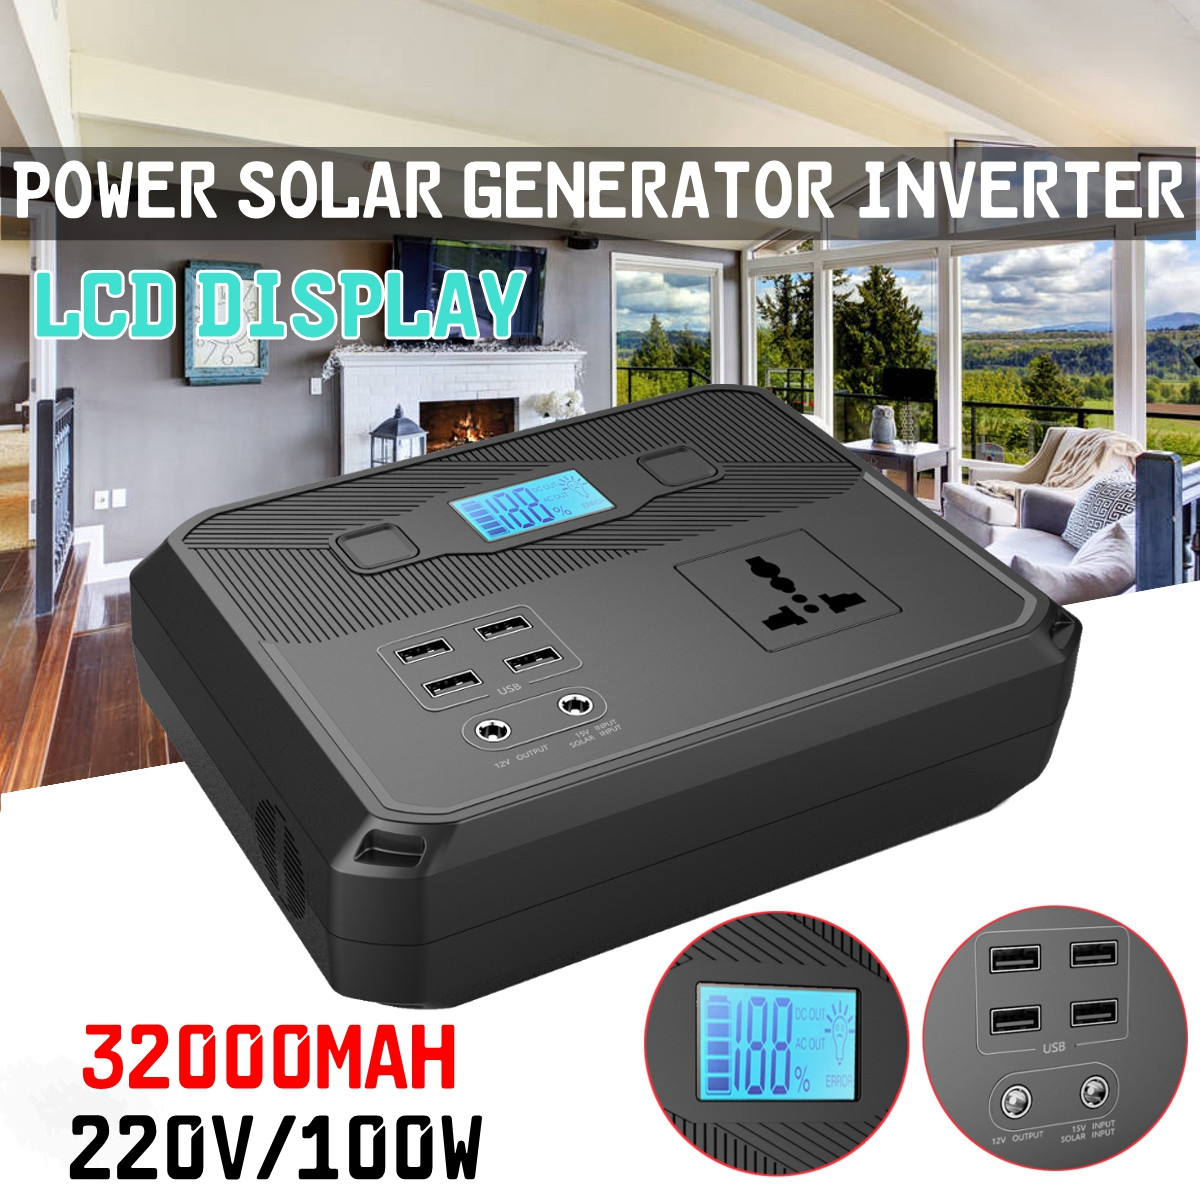 цена на 220V 120Wh 100W Energy Storage Portable Power Solar Generator Inverter faster USB charger for Home Outdoor Camping